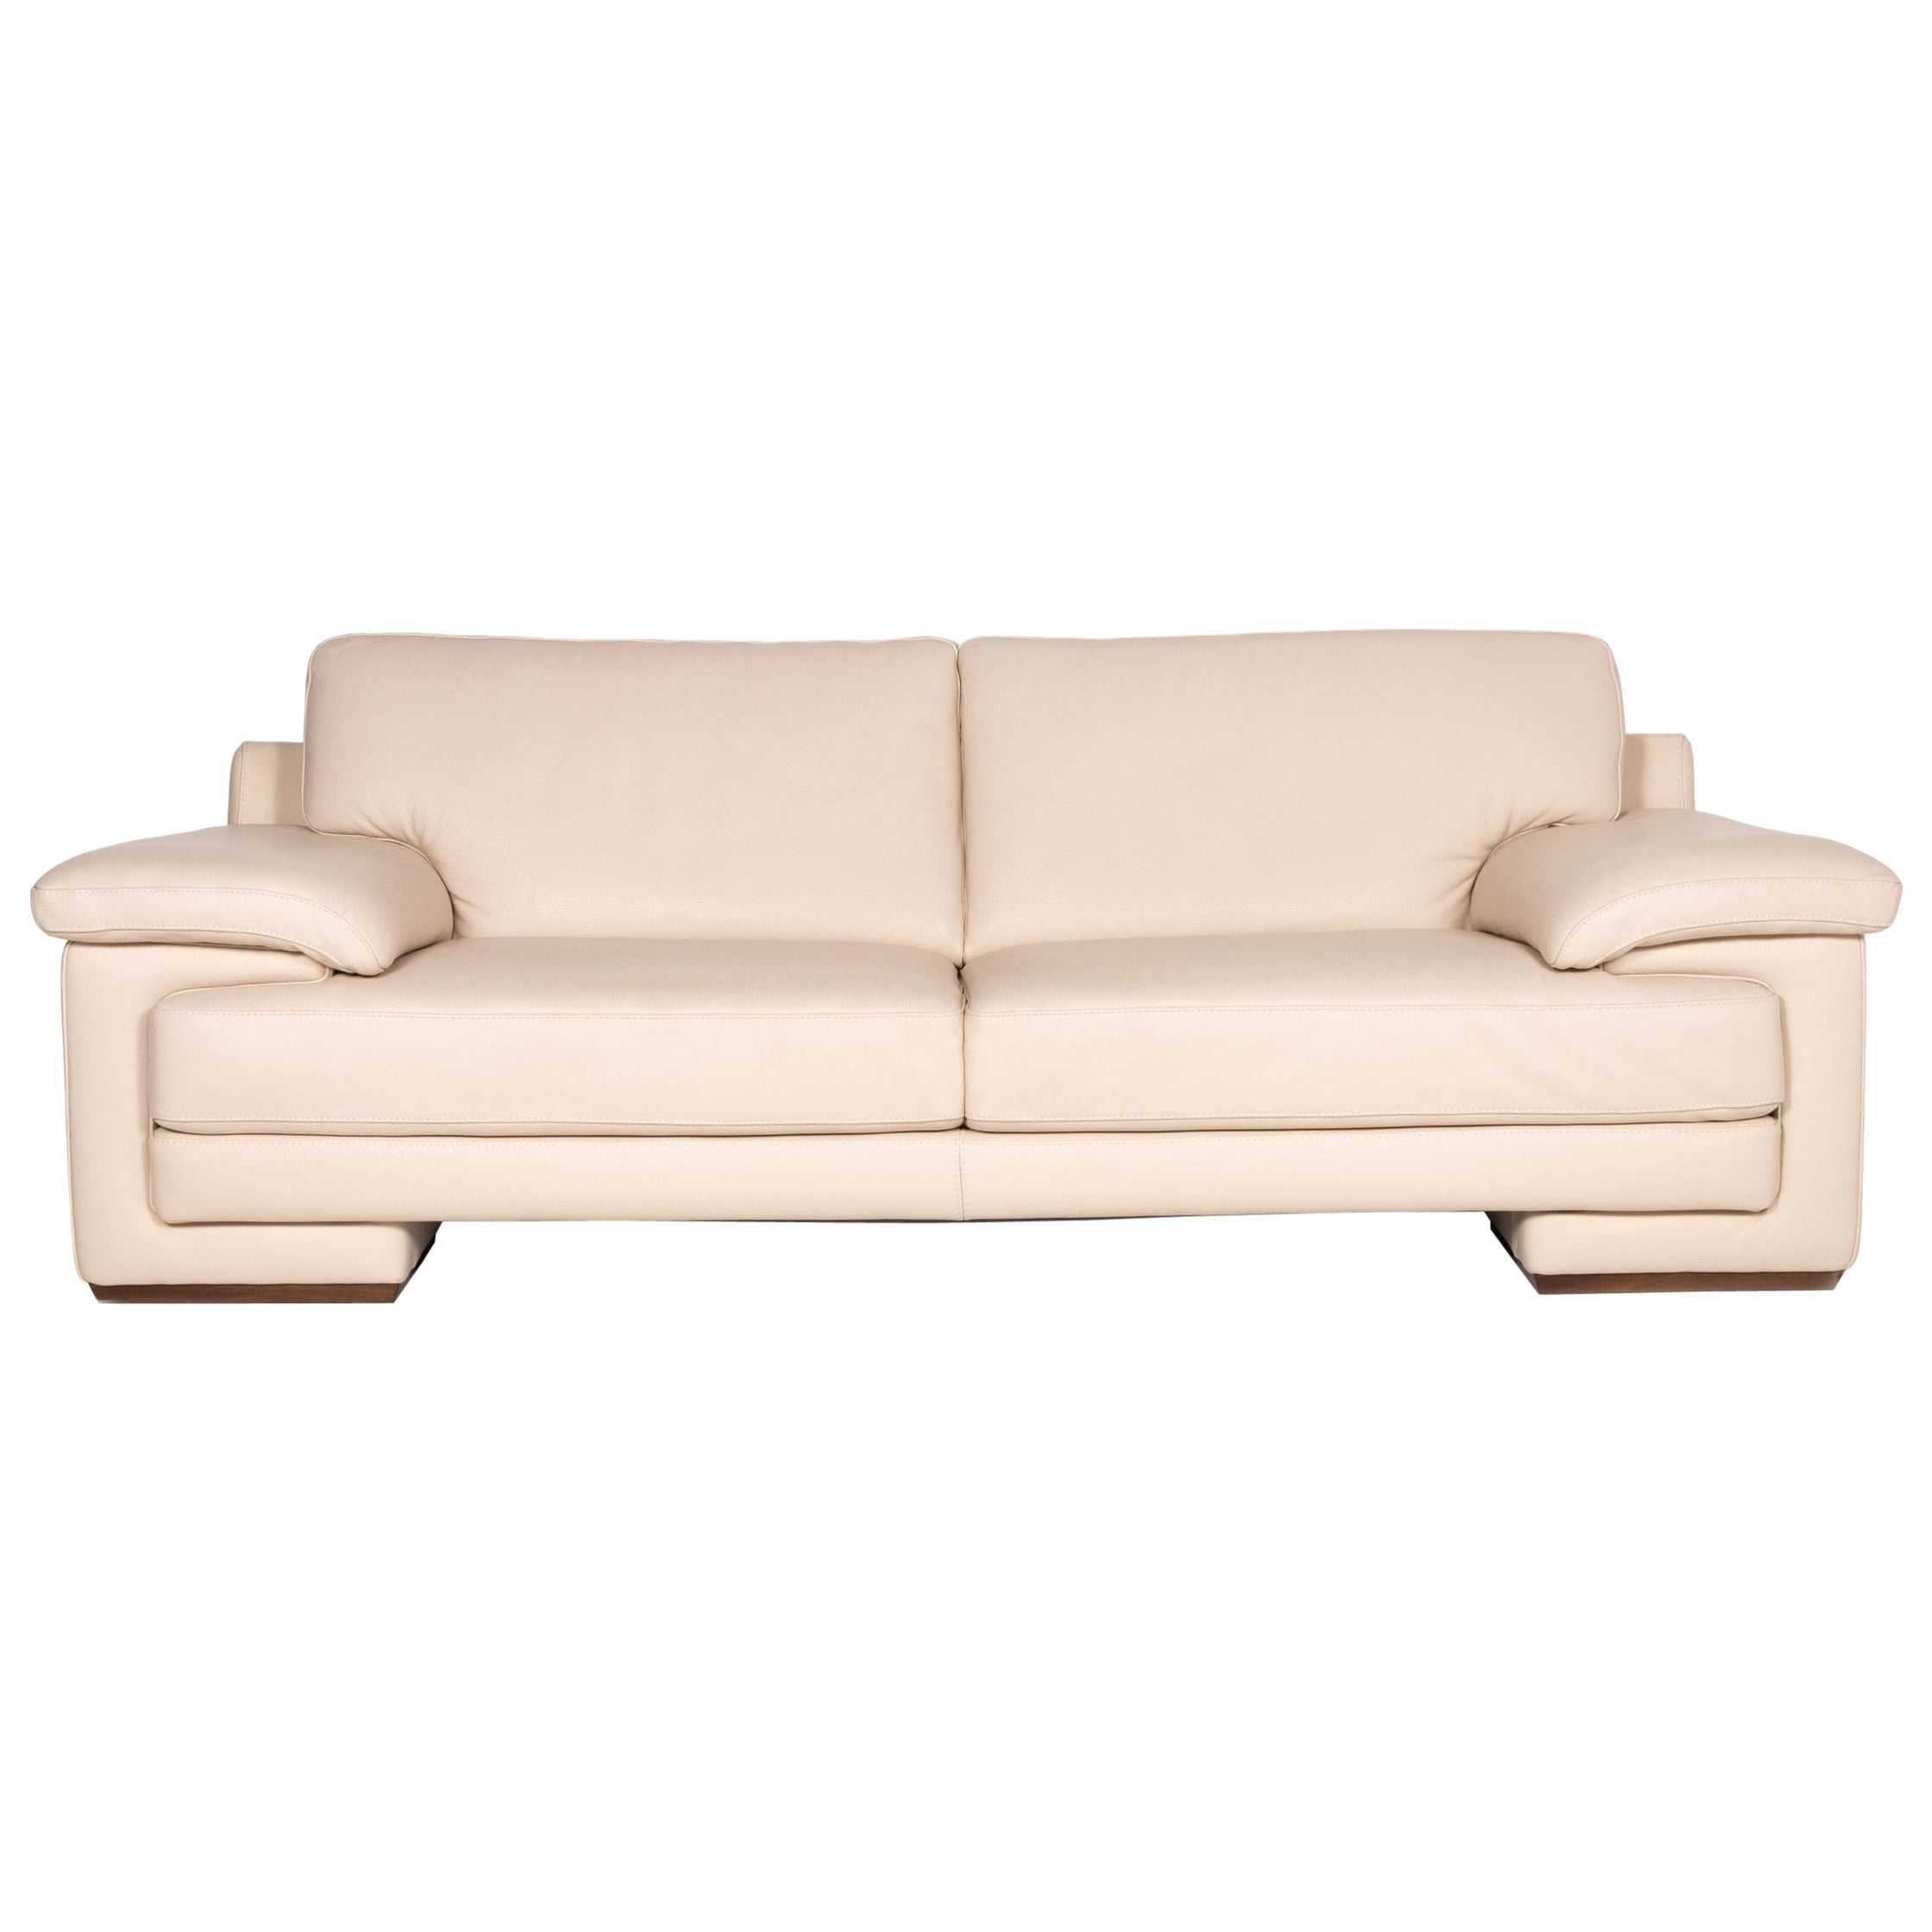 Natuzzi 2198 Leather Sofa Cream Three-Seater Couch